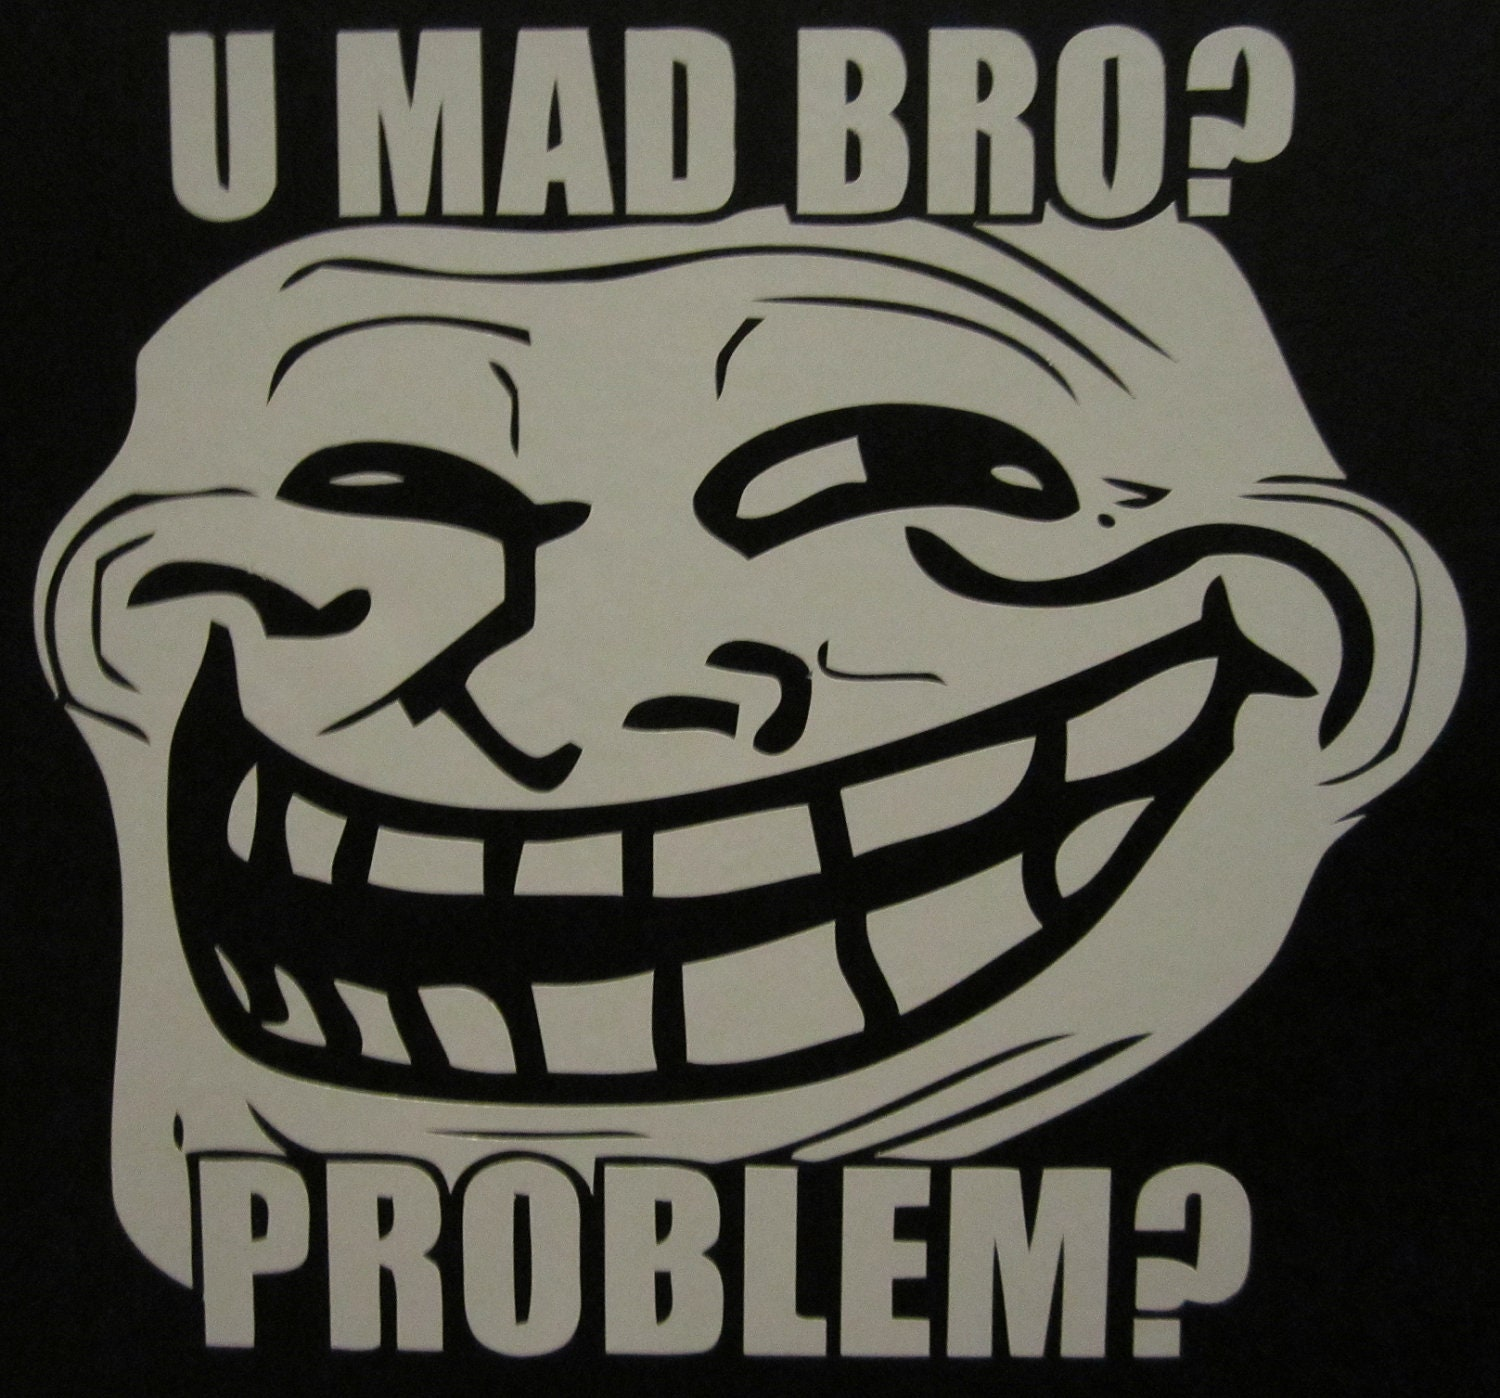 the internet troll u mad bro essay Another internet famous quote 'u mad, bro' commonly used by the trolls a definite buy for irl trolls too available as tshirts from: £1581.